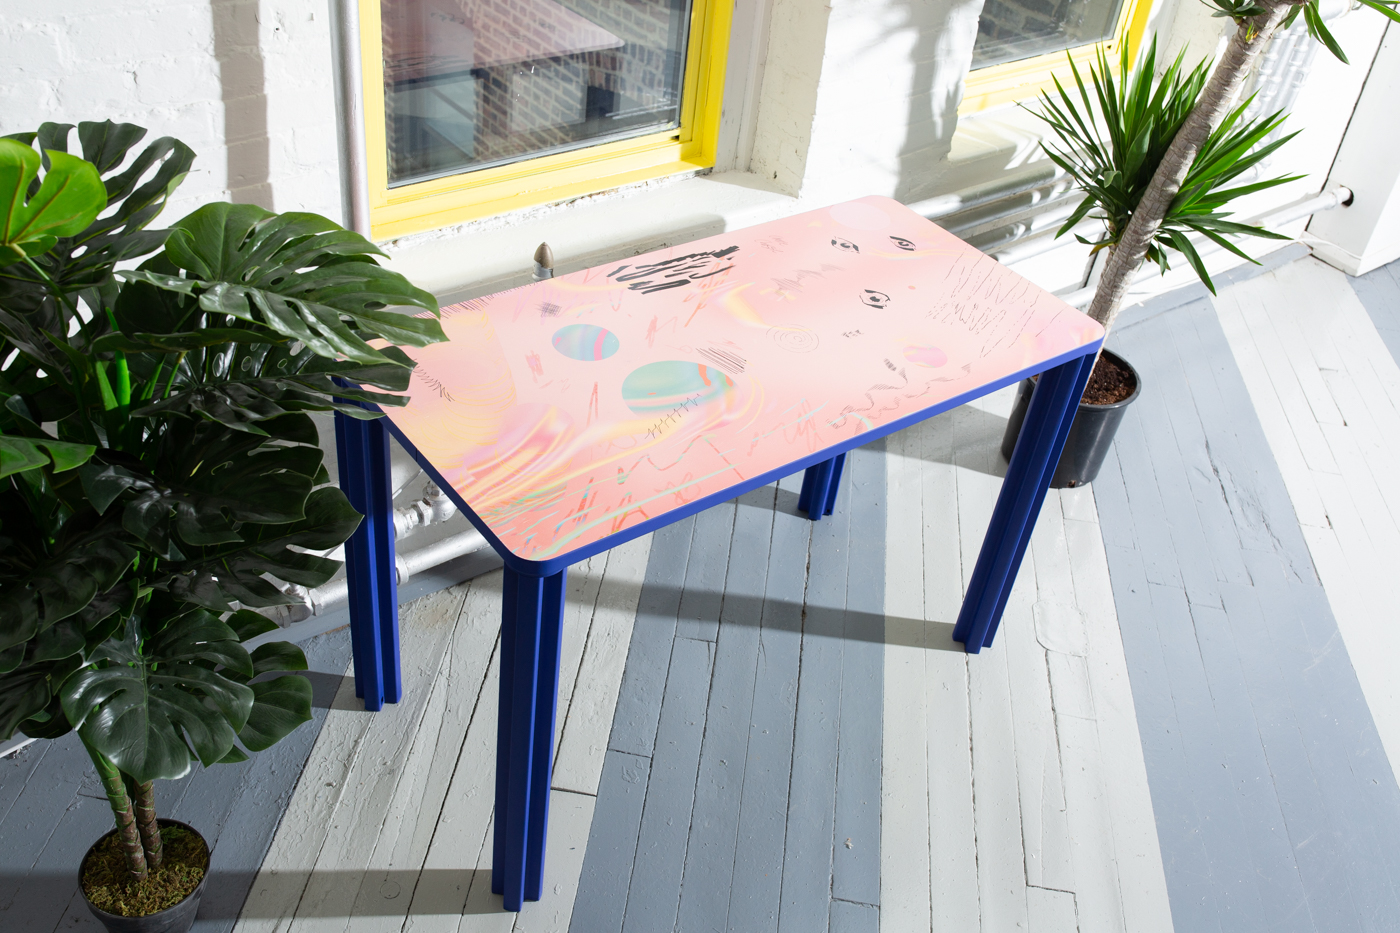 Desk printed with solar system pattern.